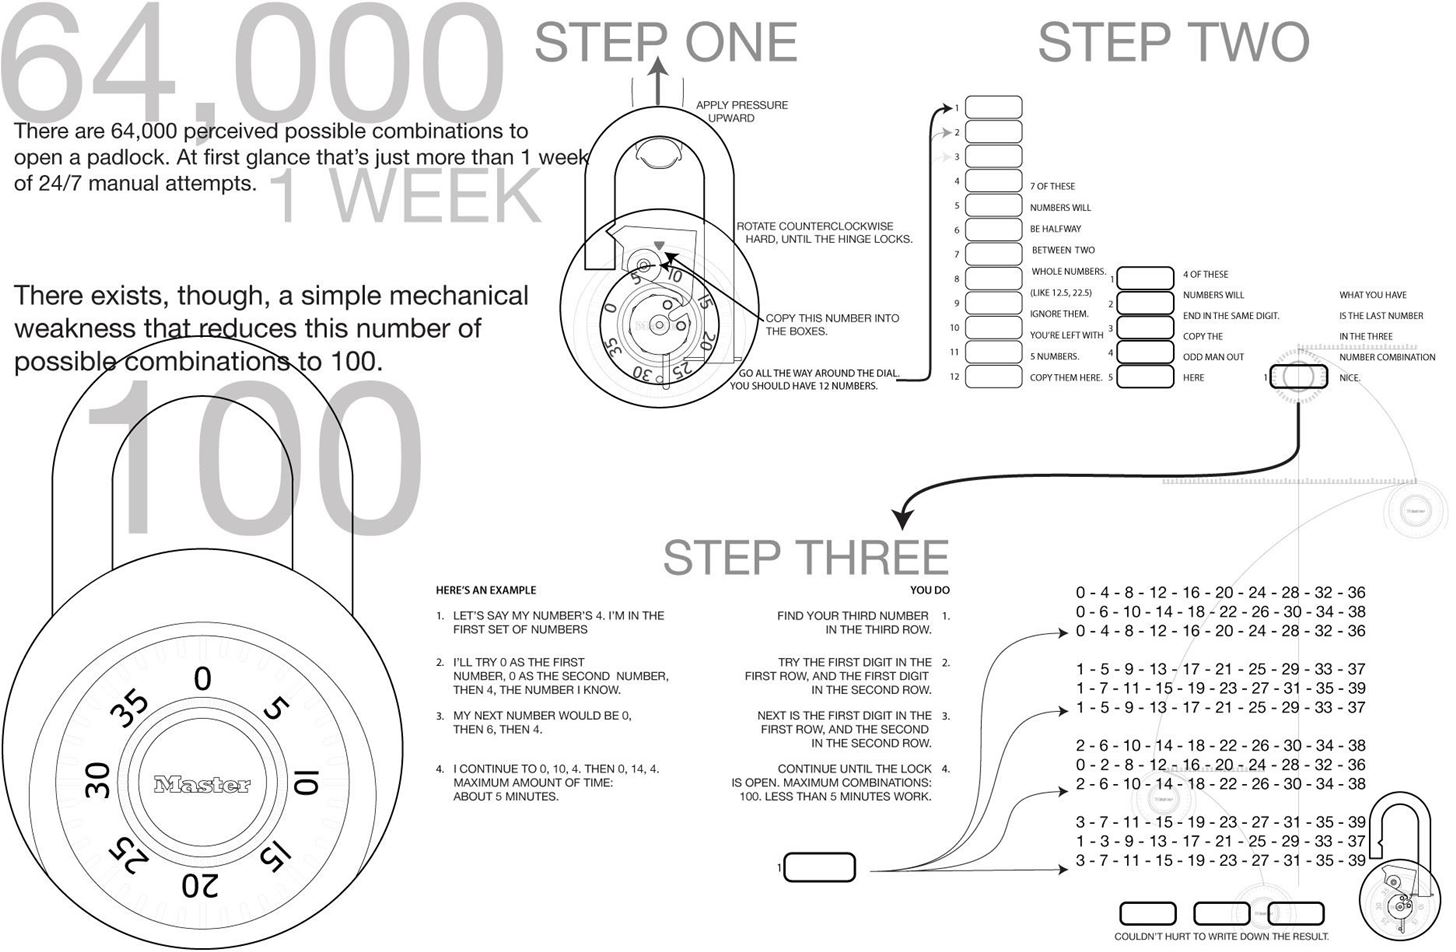 Crack a Master Lock Mathematically, Without a Shim